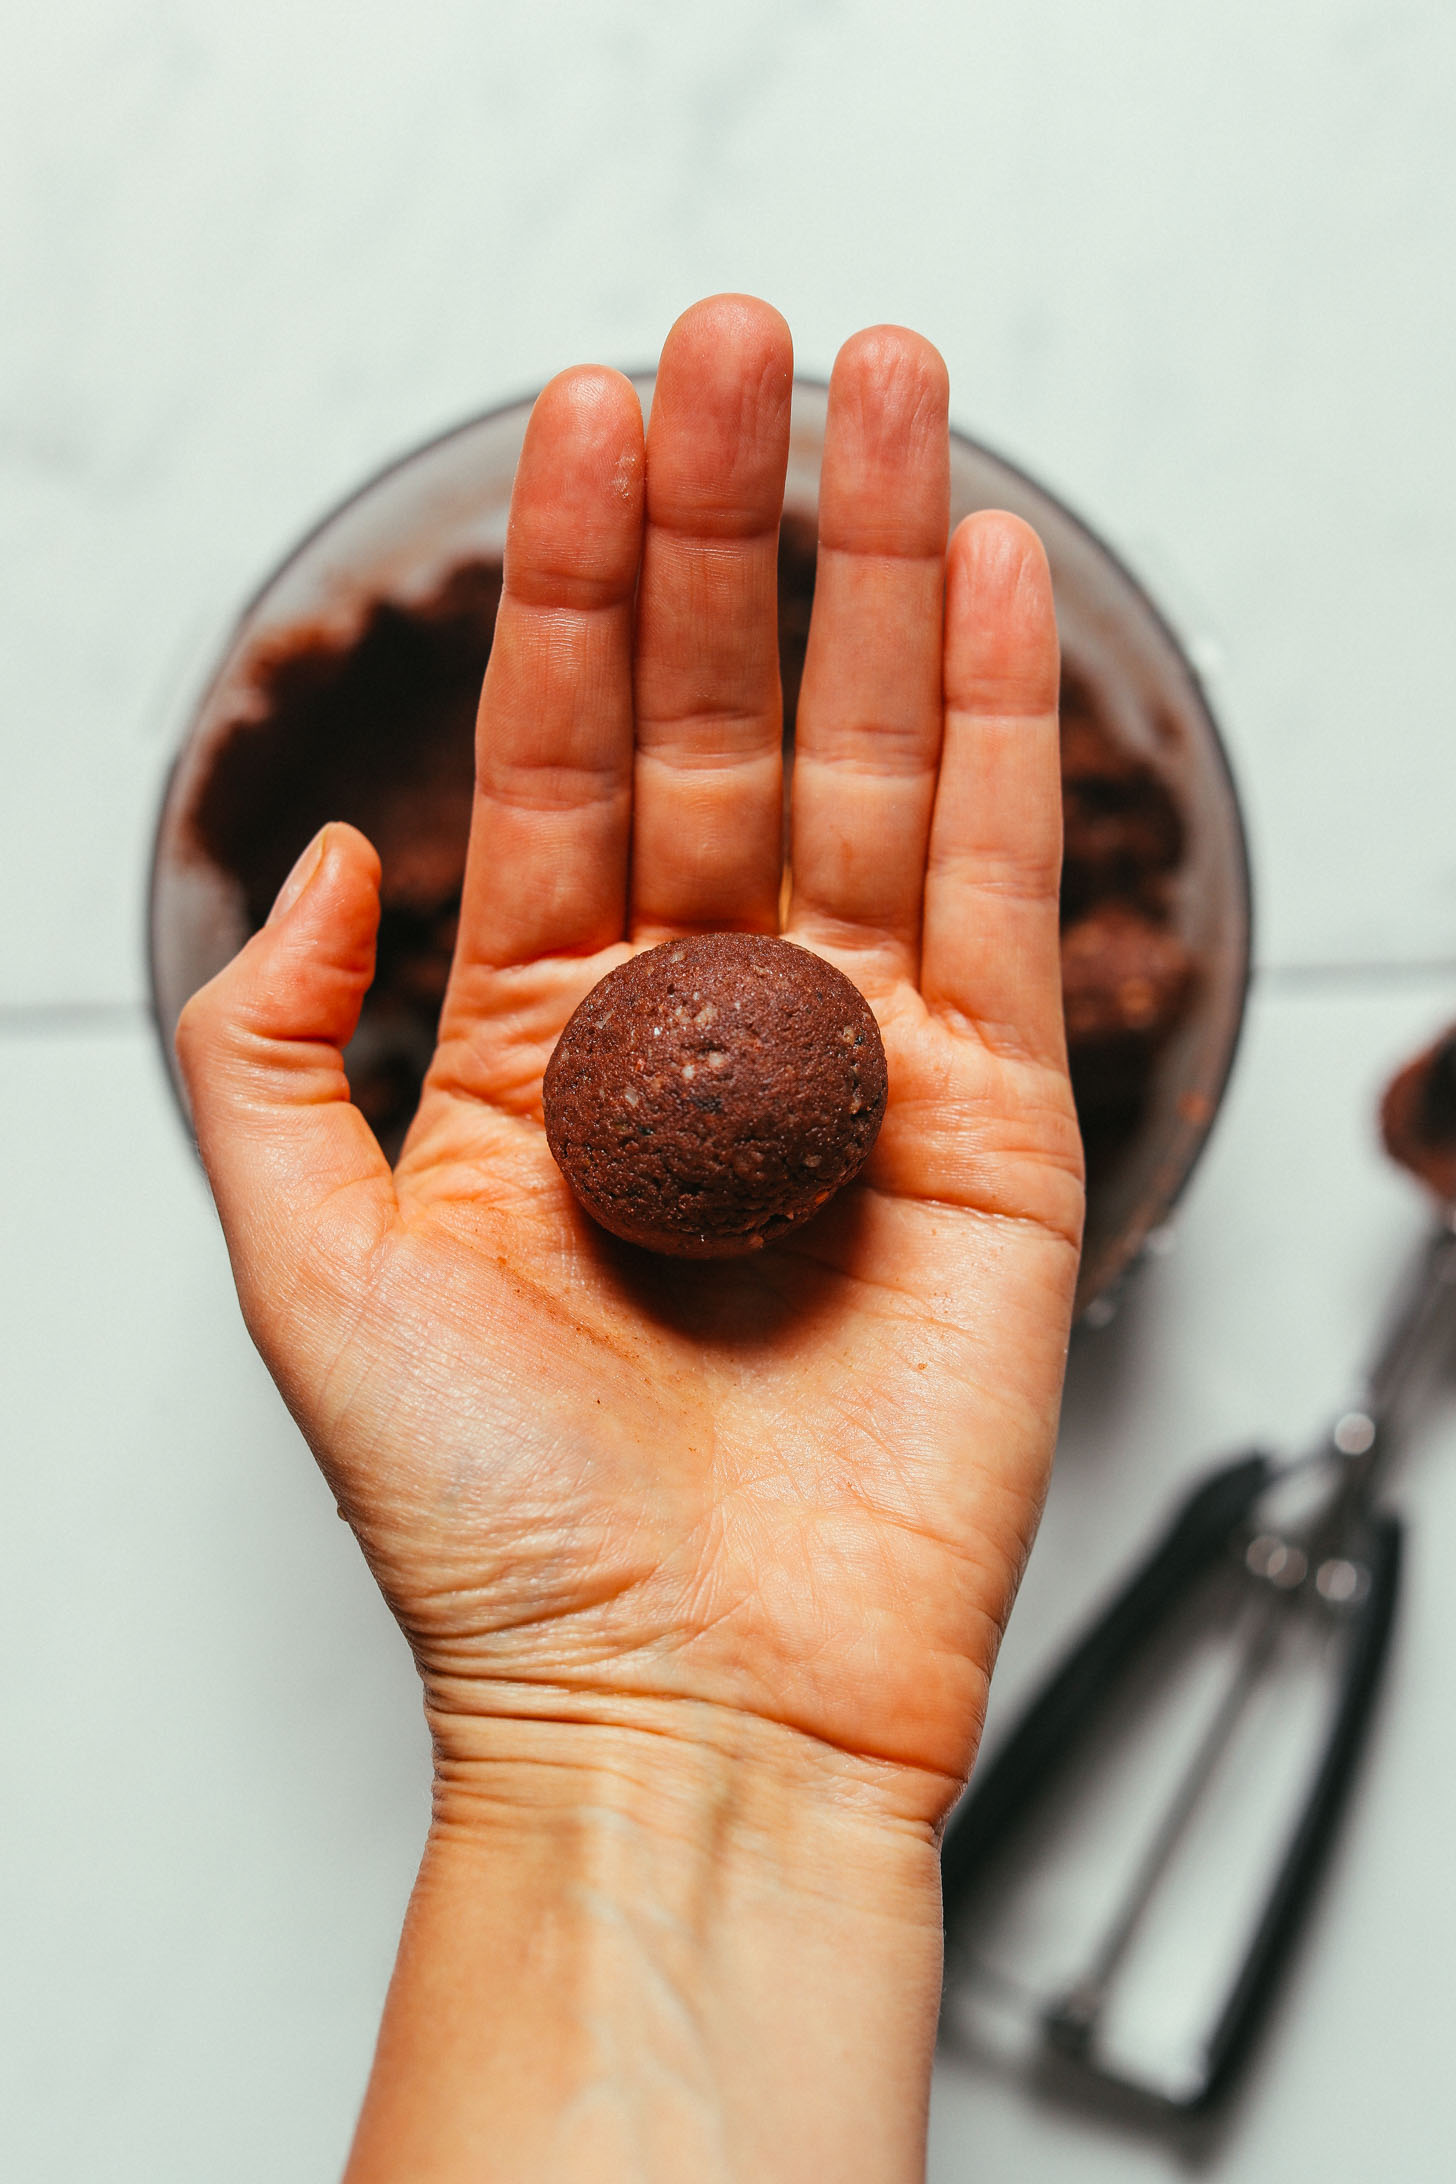 Holding up a Brownie Bliss Ball made with almond pulp and cacao powder